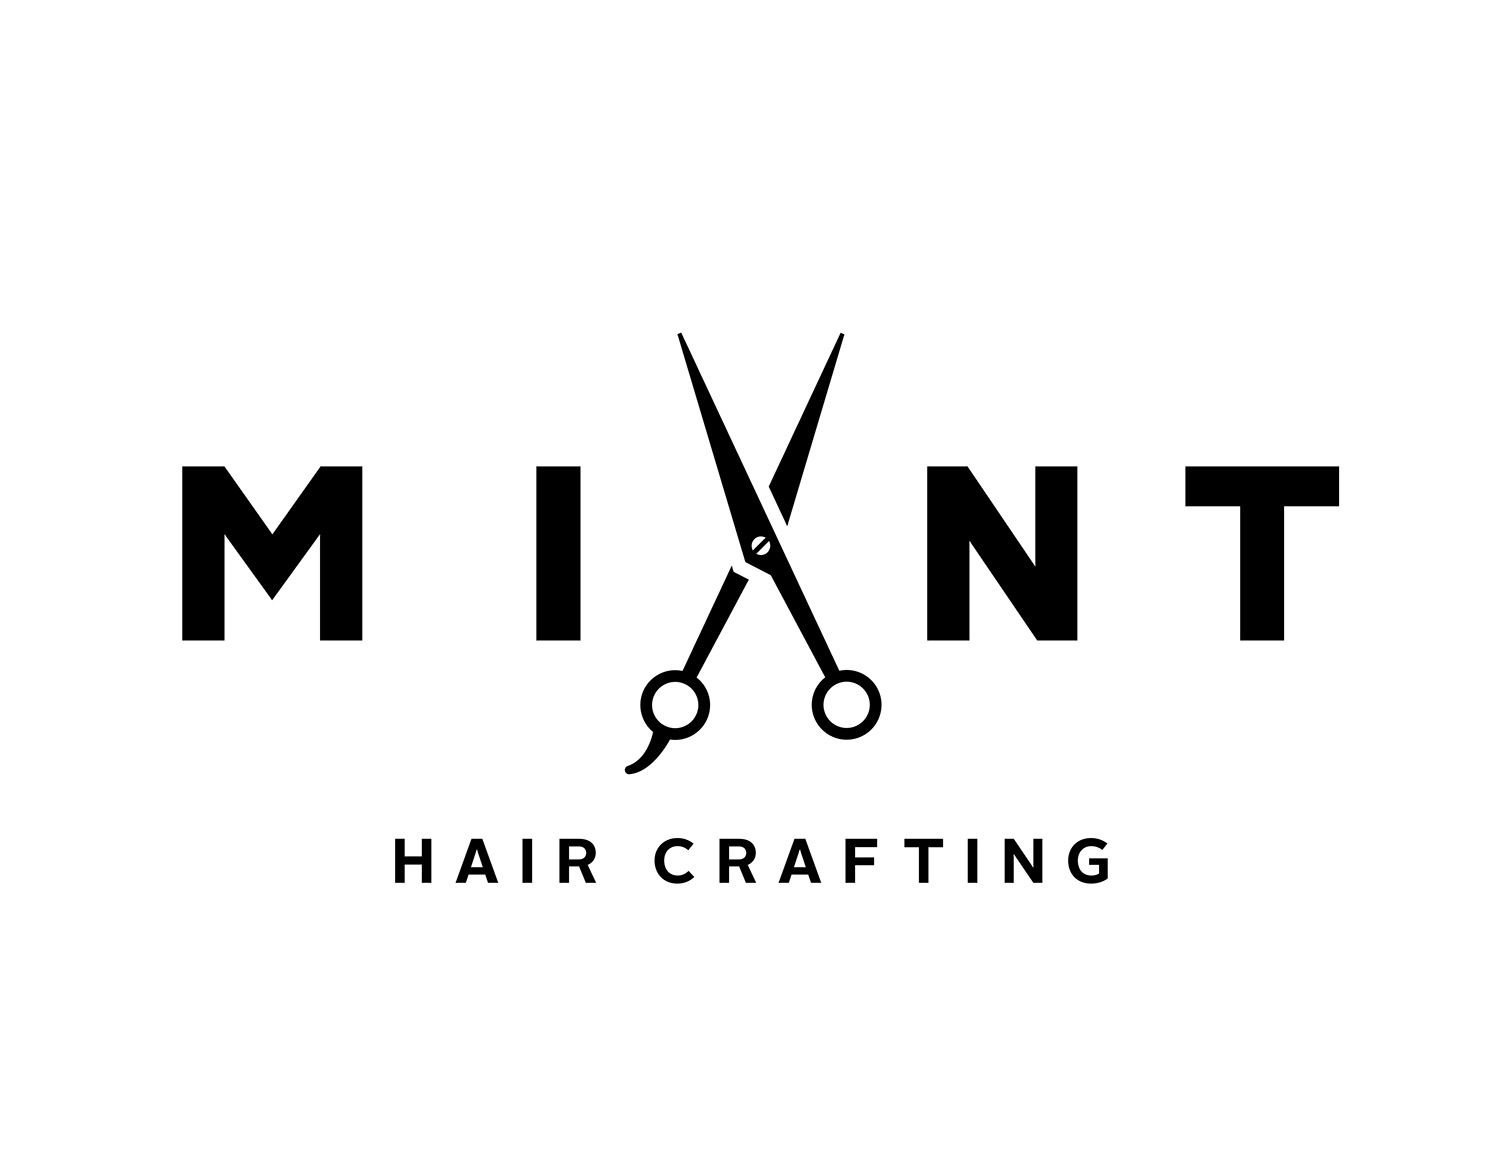 Mint Hair Crafting